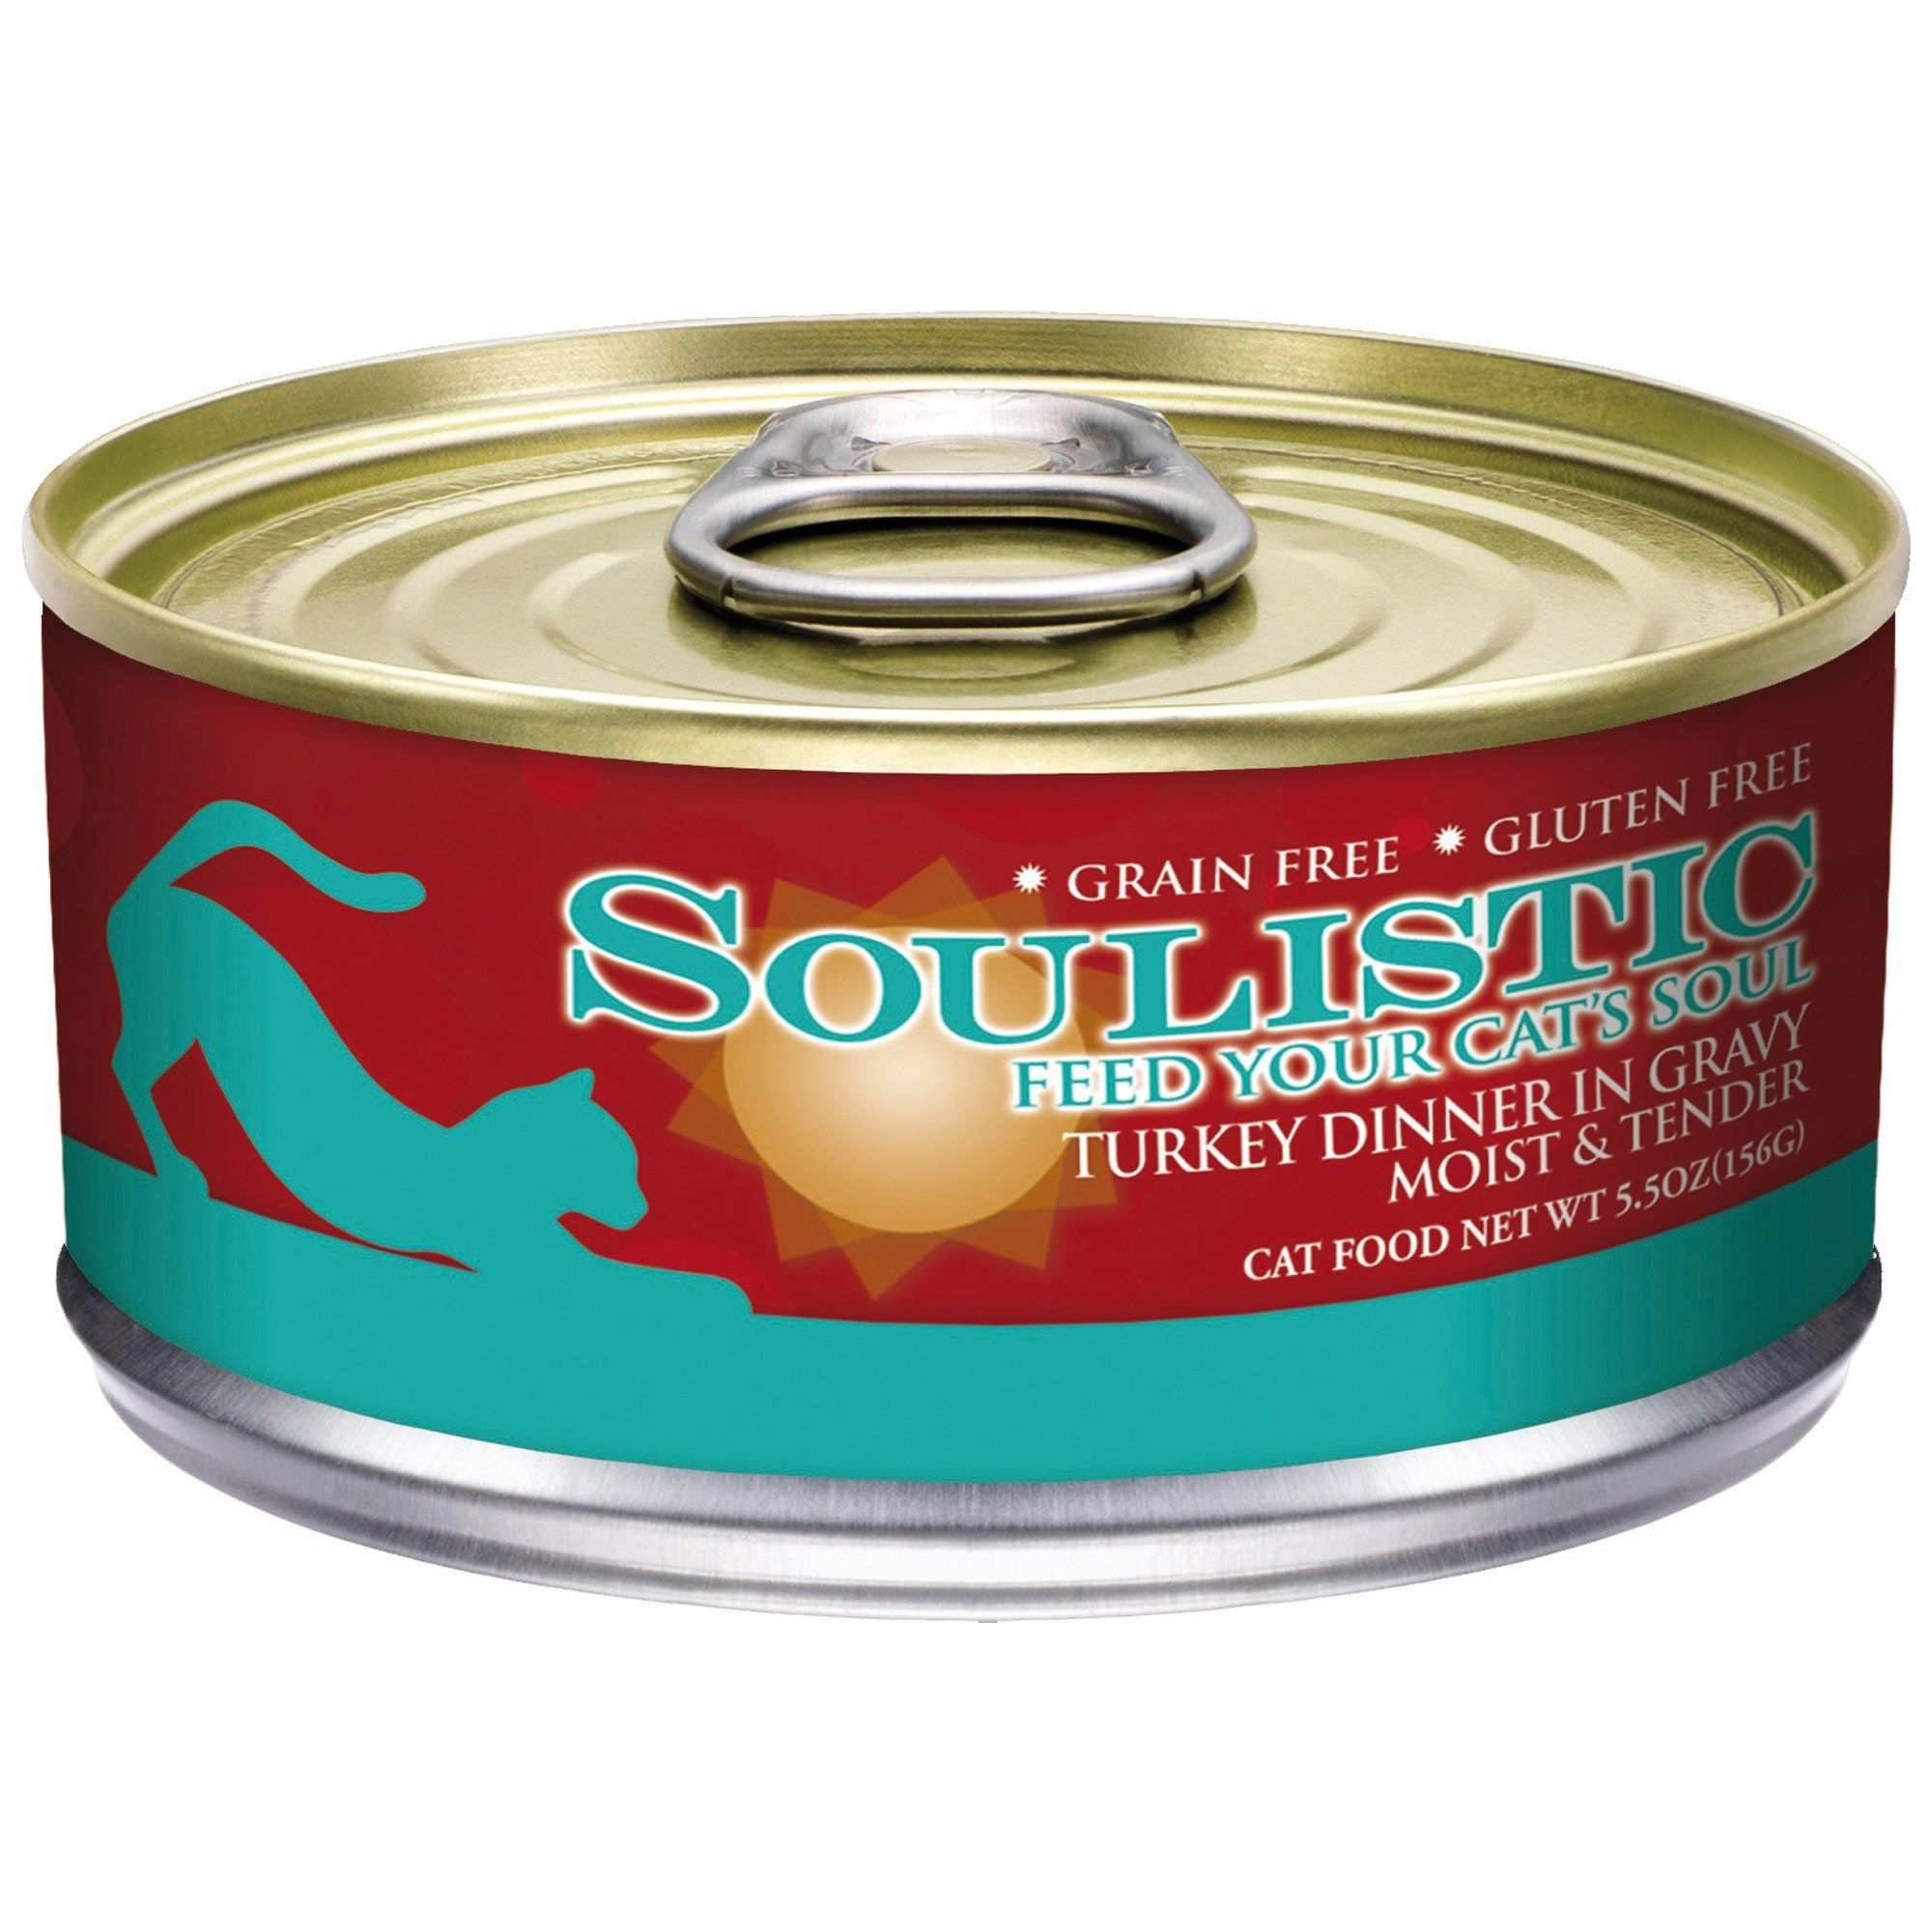 Soulistic Moist and Tender Turkey Dinner Adult Canned Cat